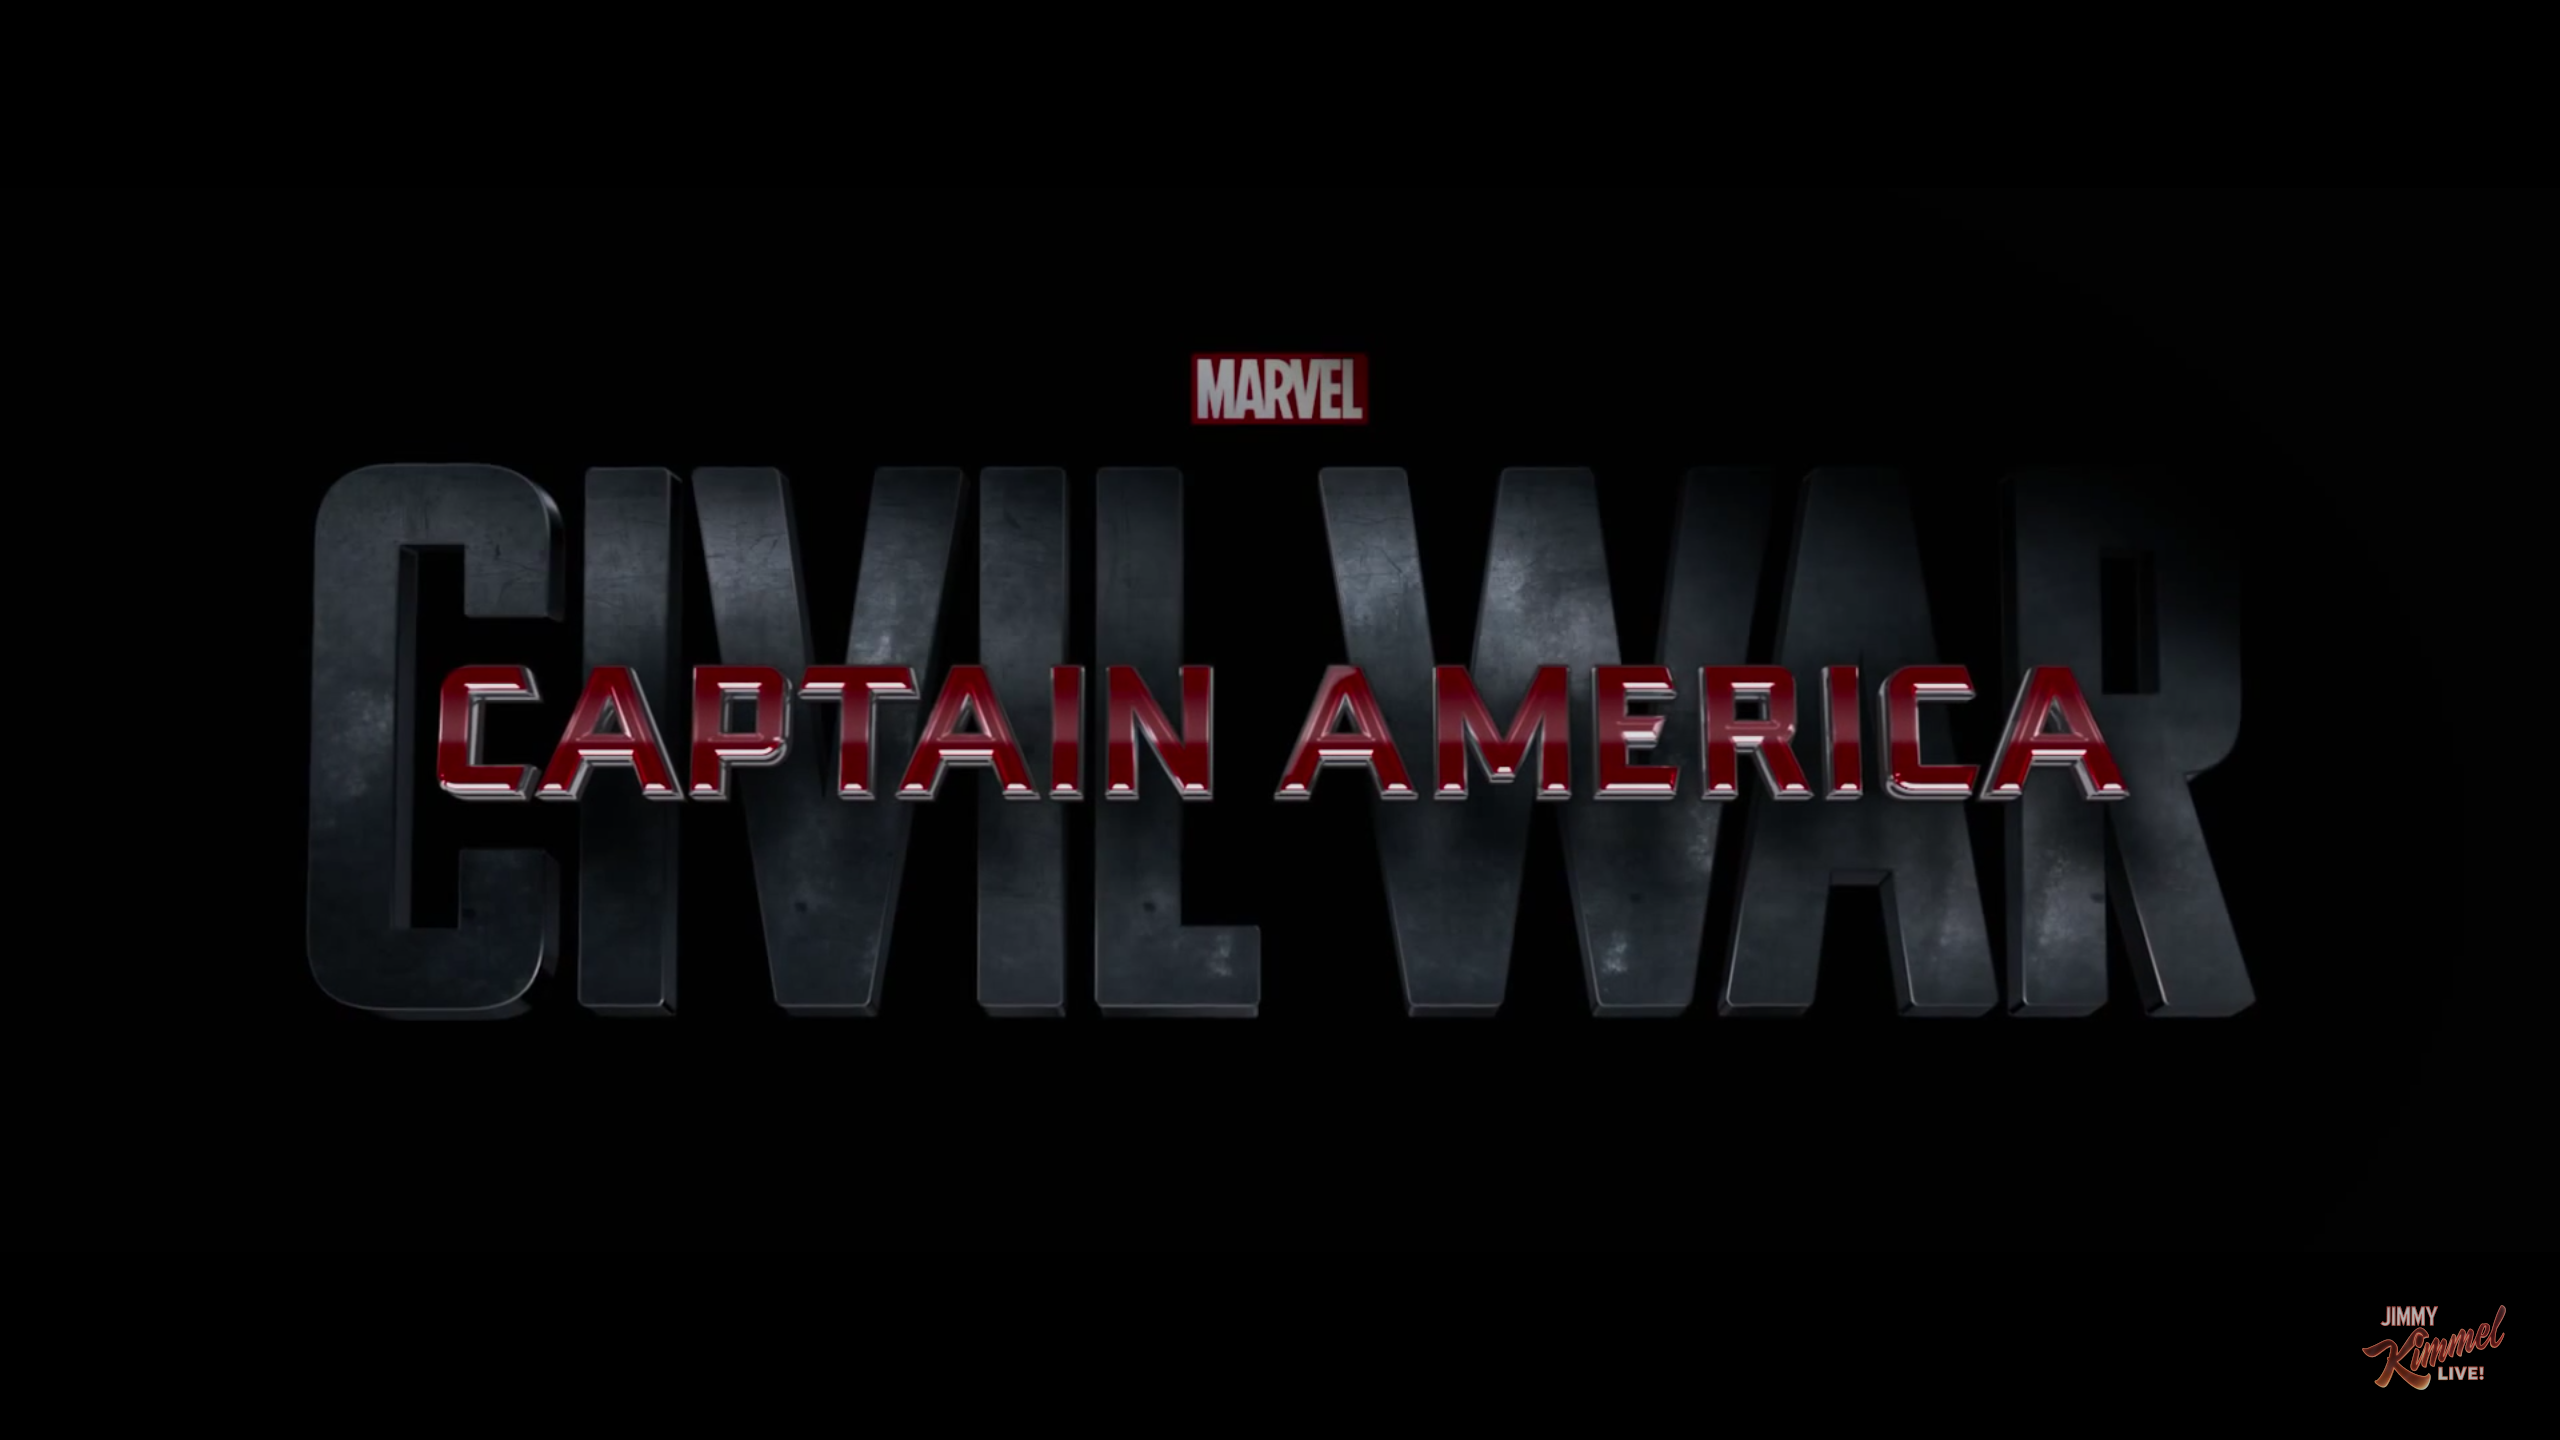 Check out the Captain America: Civil War trailer